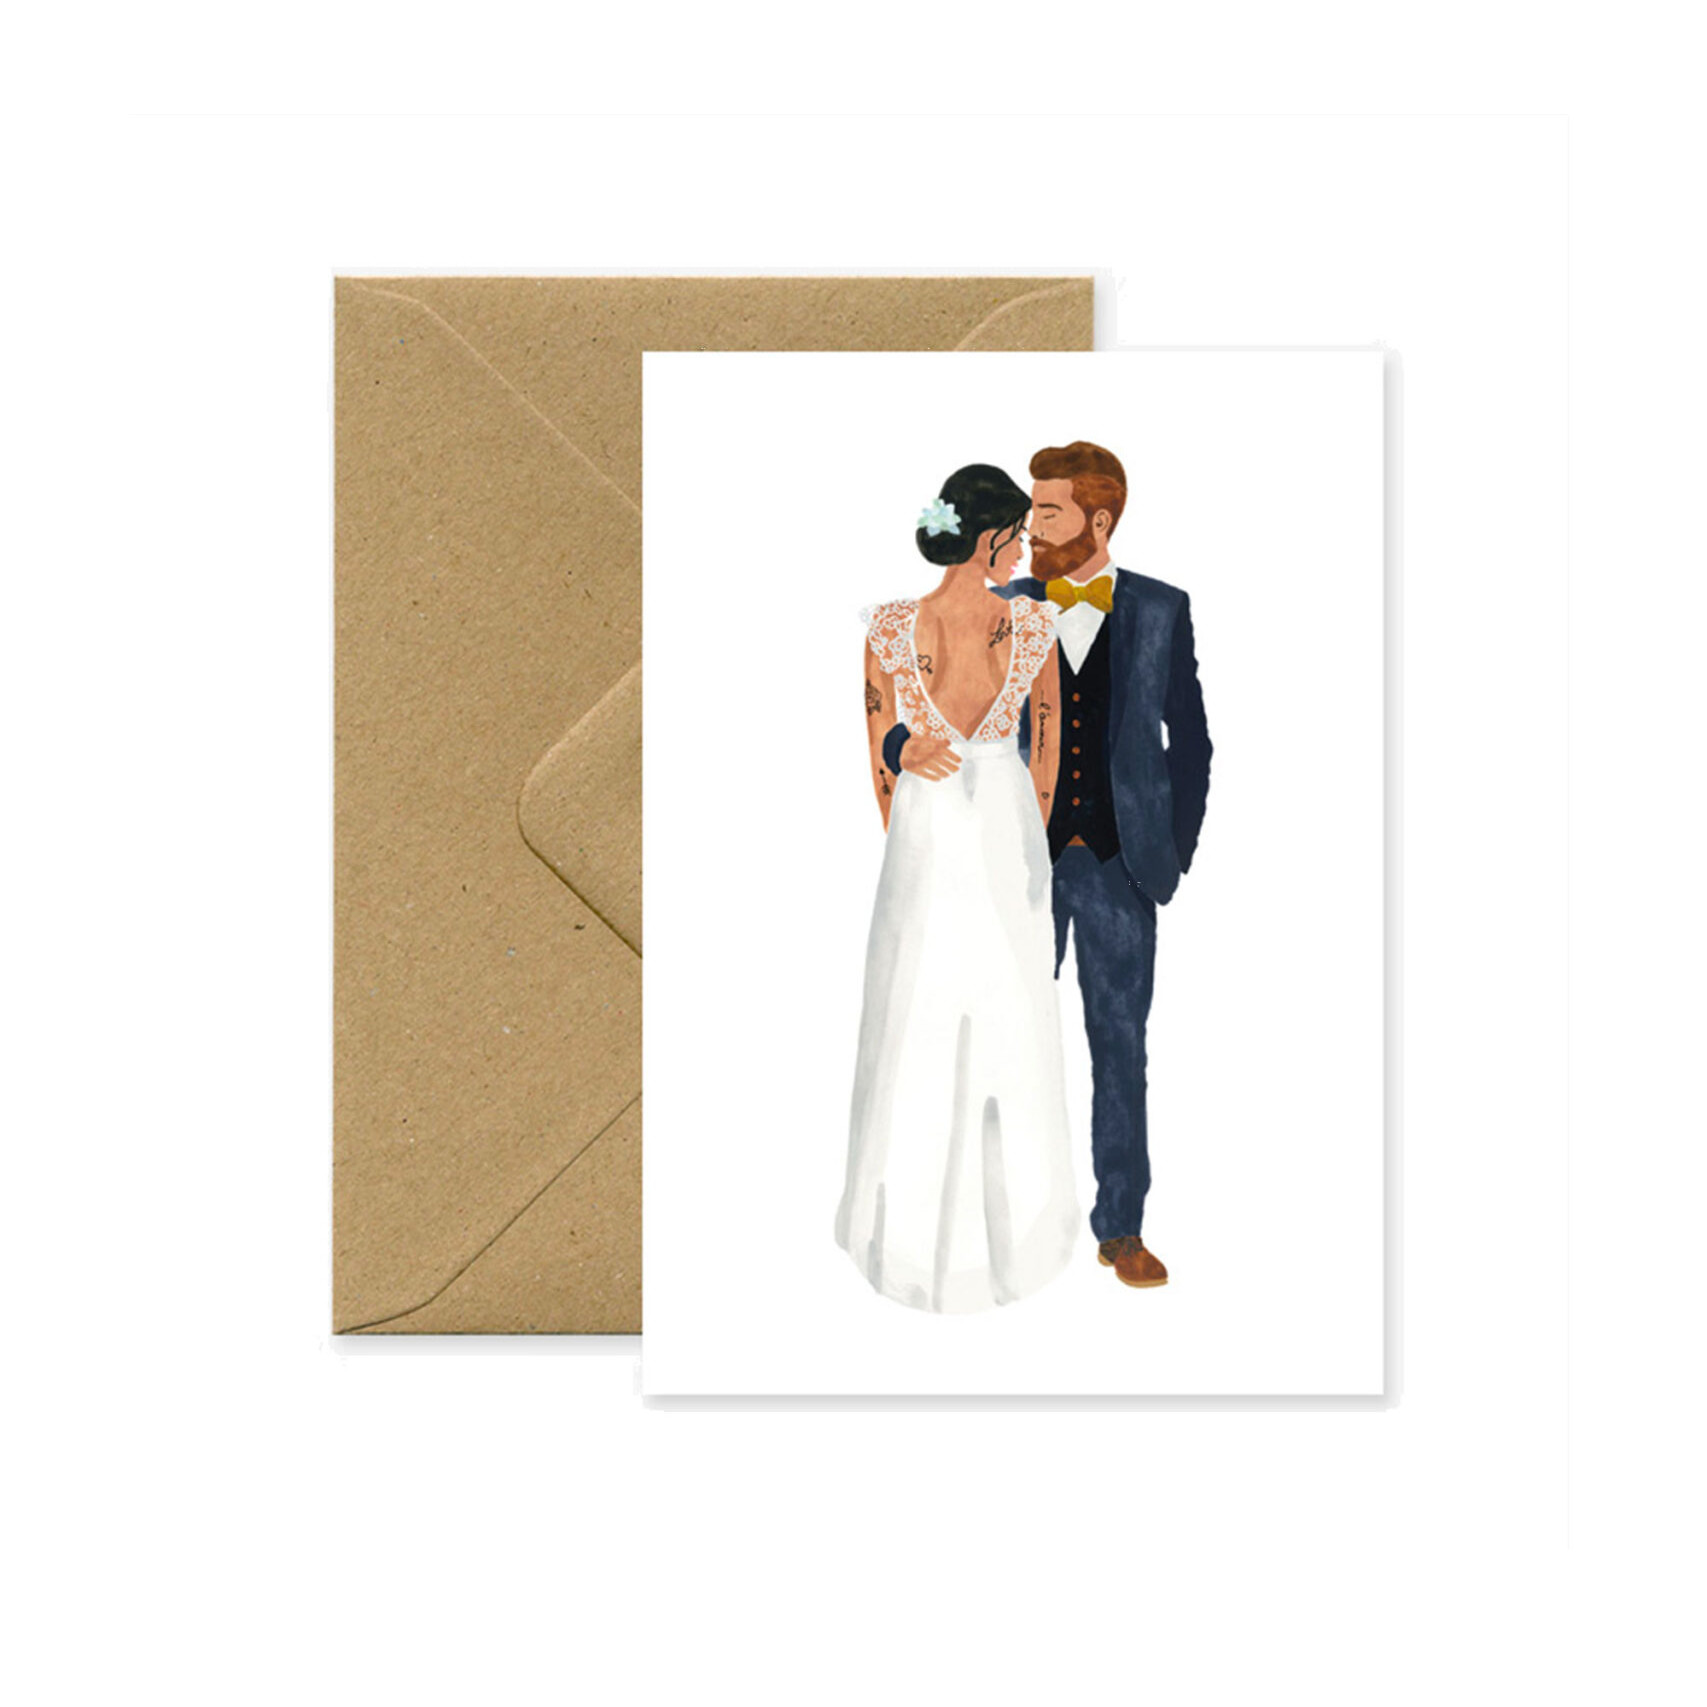 carte-marriedlovers-allthewaystosay-maison-paon